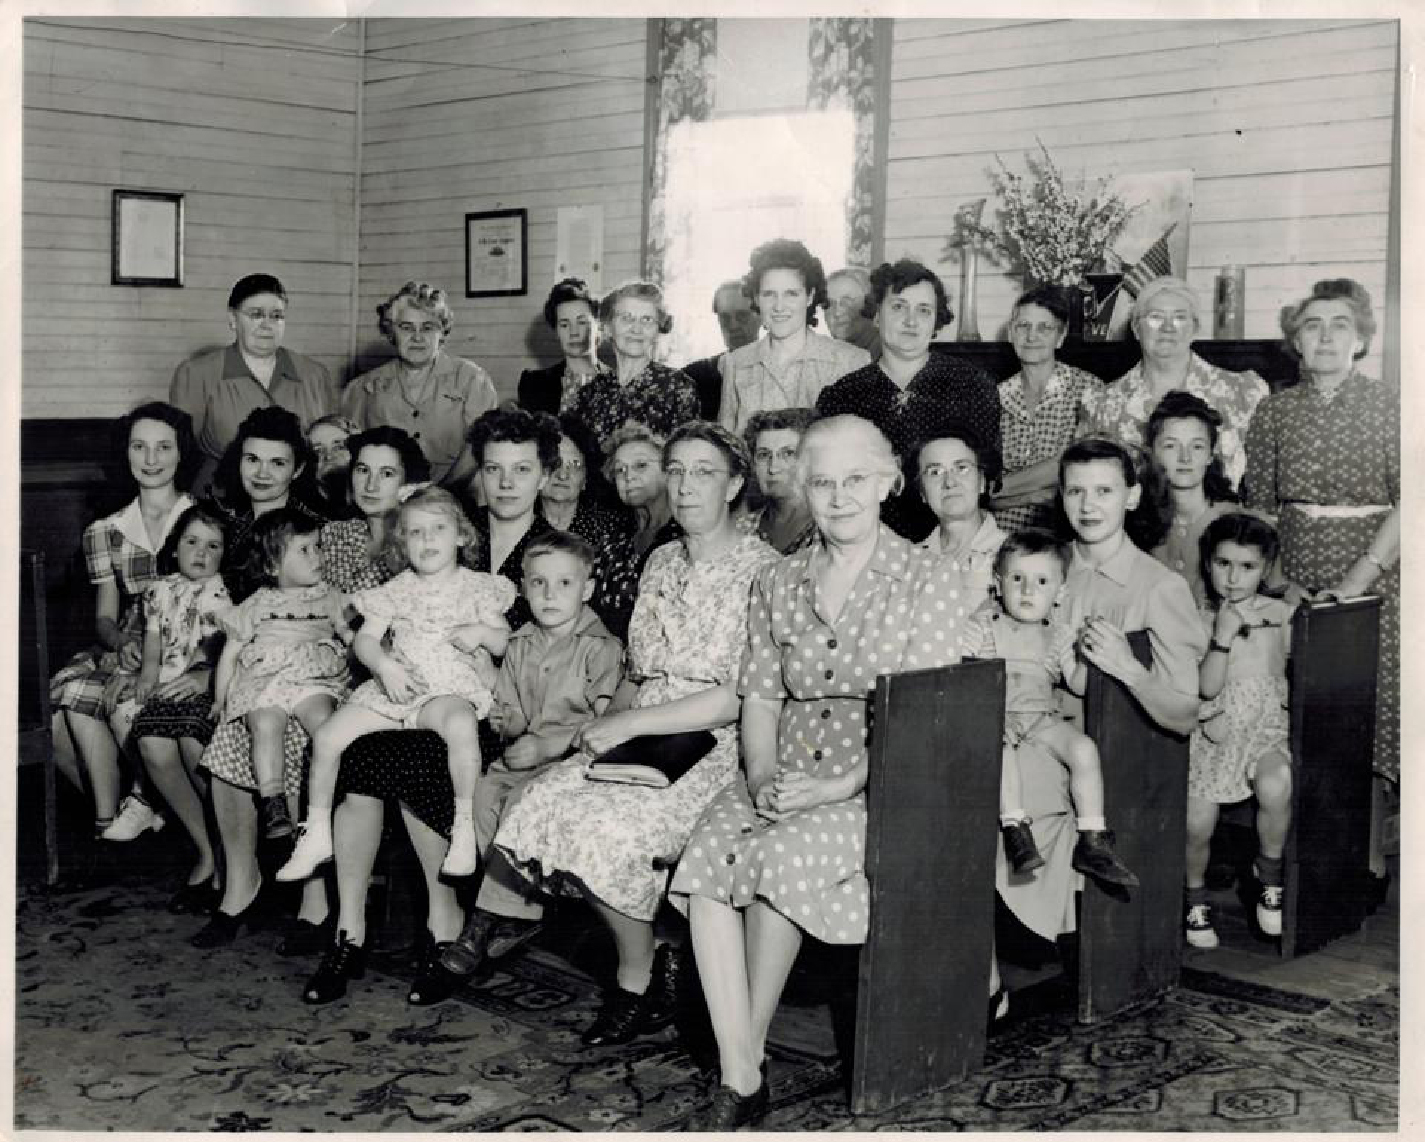 Boling Canning Club, 1940s